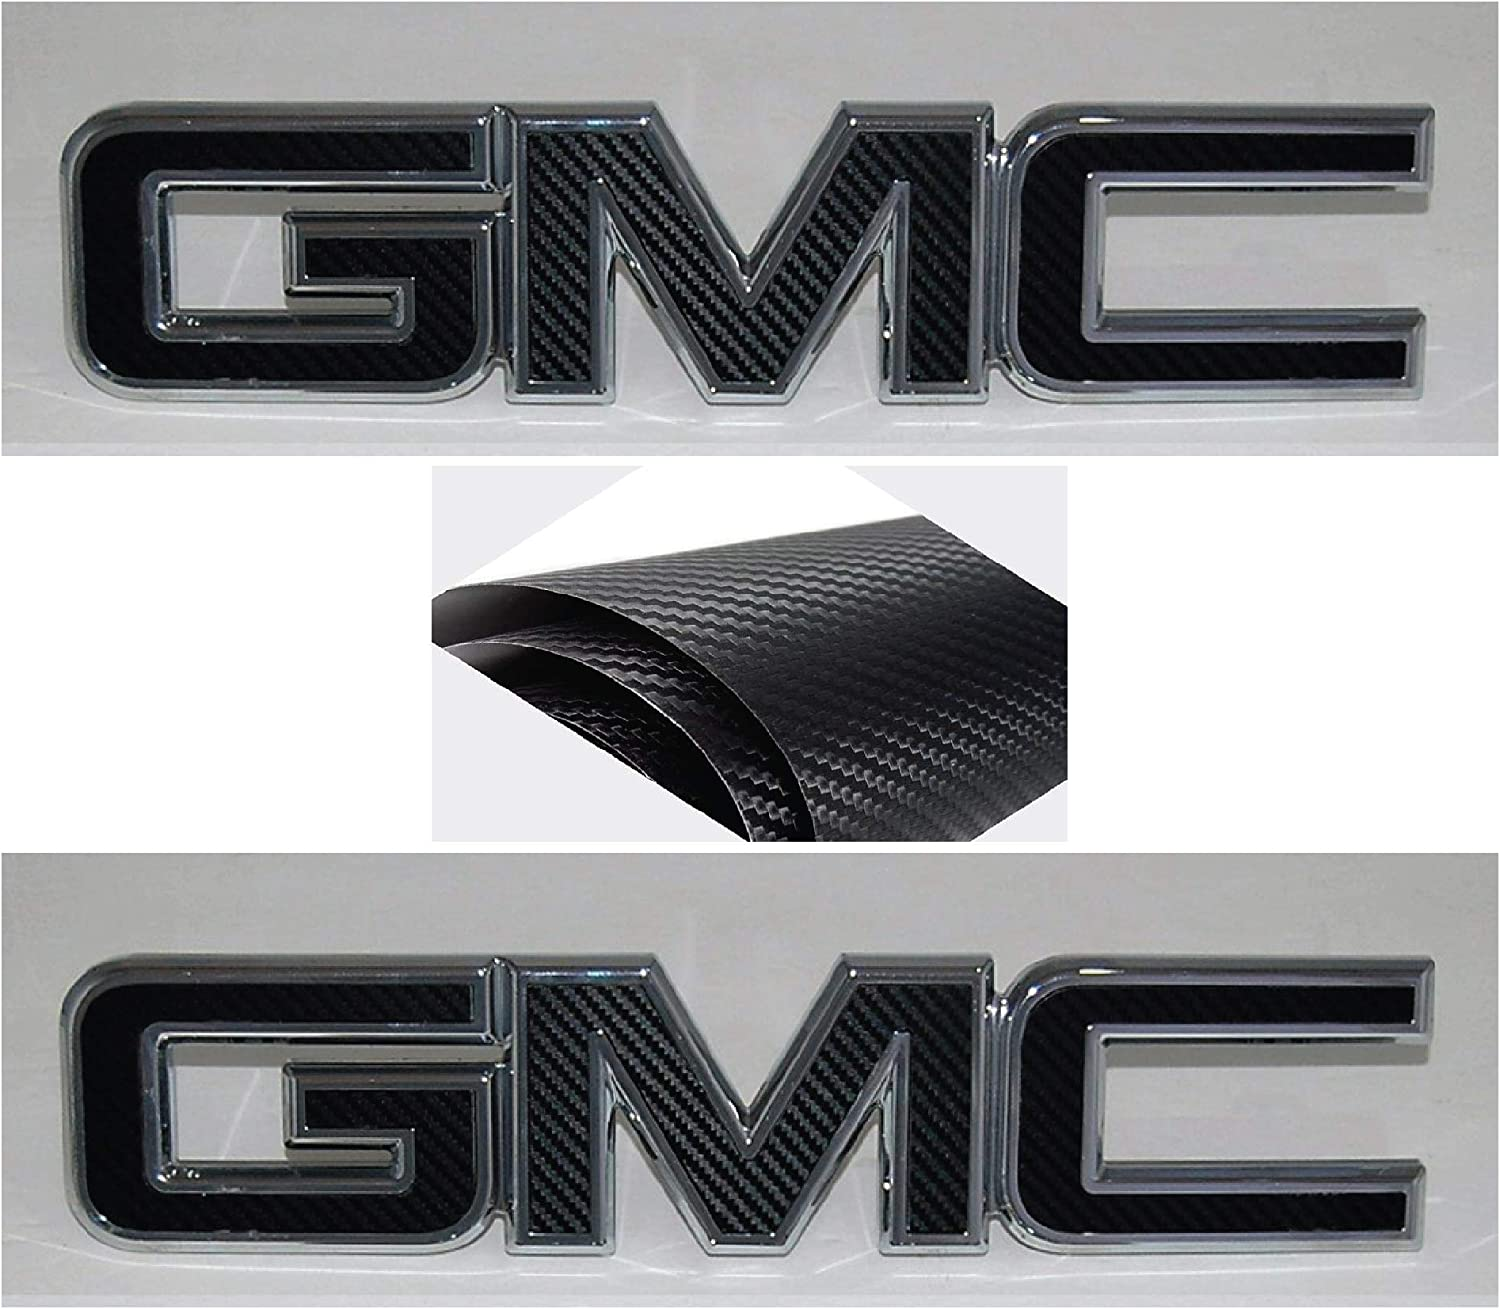 DIY Acadia Terrain || 3M BLACK CARBON FIBER 2007-2017 GMC FRONT and REAR Emblem Overlay Kit || Cut Your Own 2 KITS Plus 1 Extra Overlay Sheet Sierra Denali NOT A PRE/_CUT SHAPE || Yukon